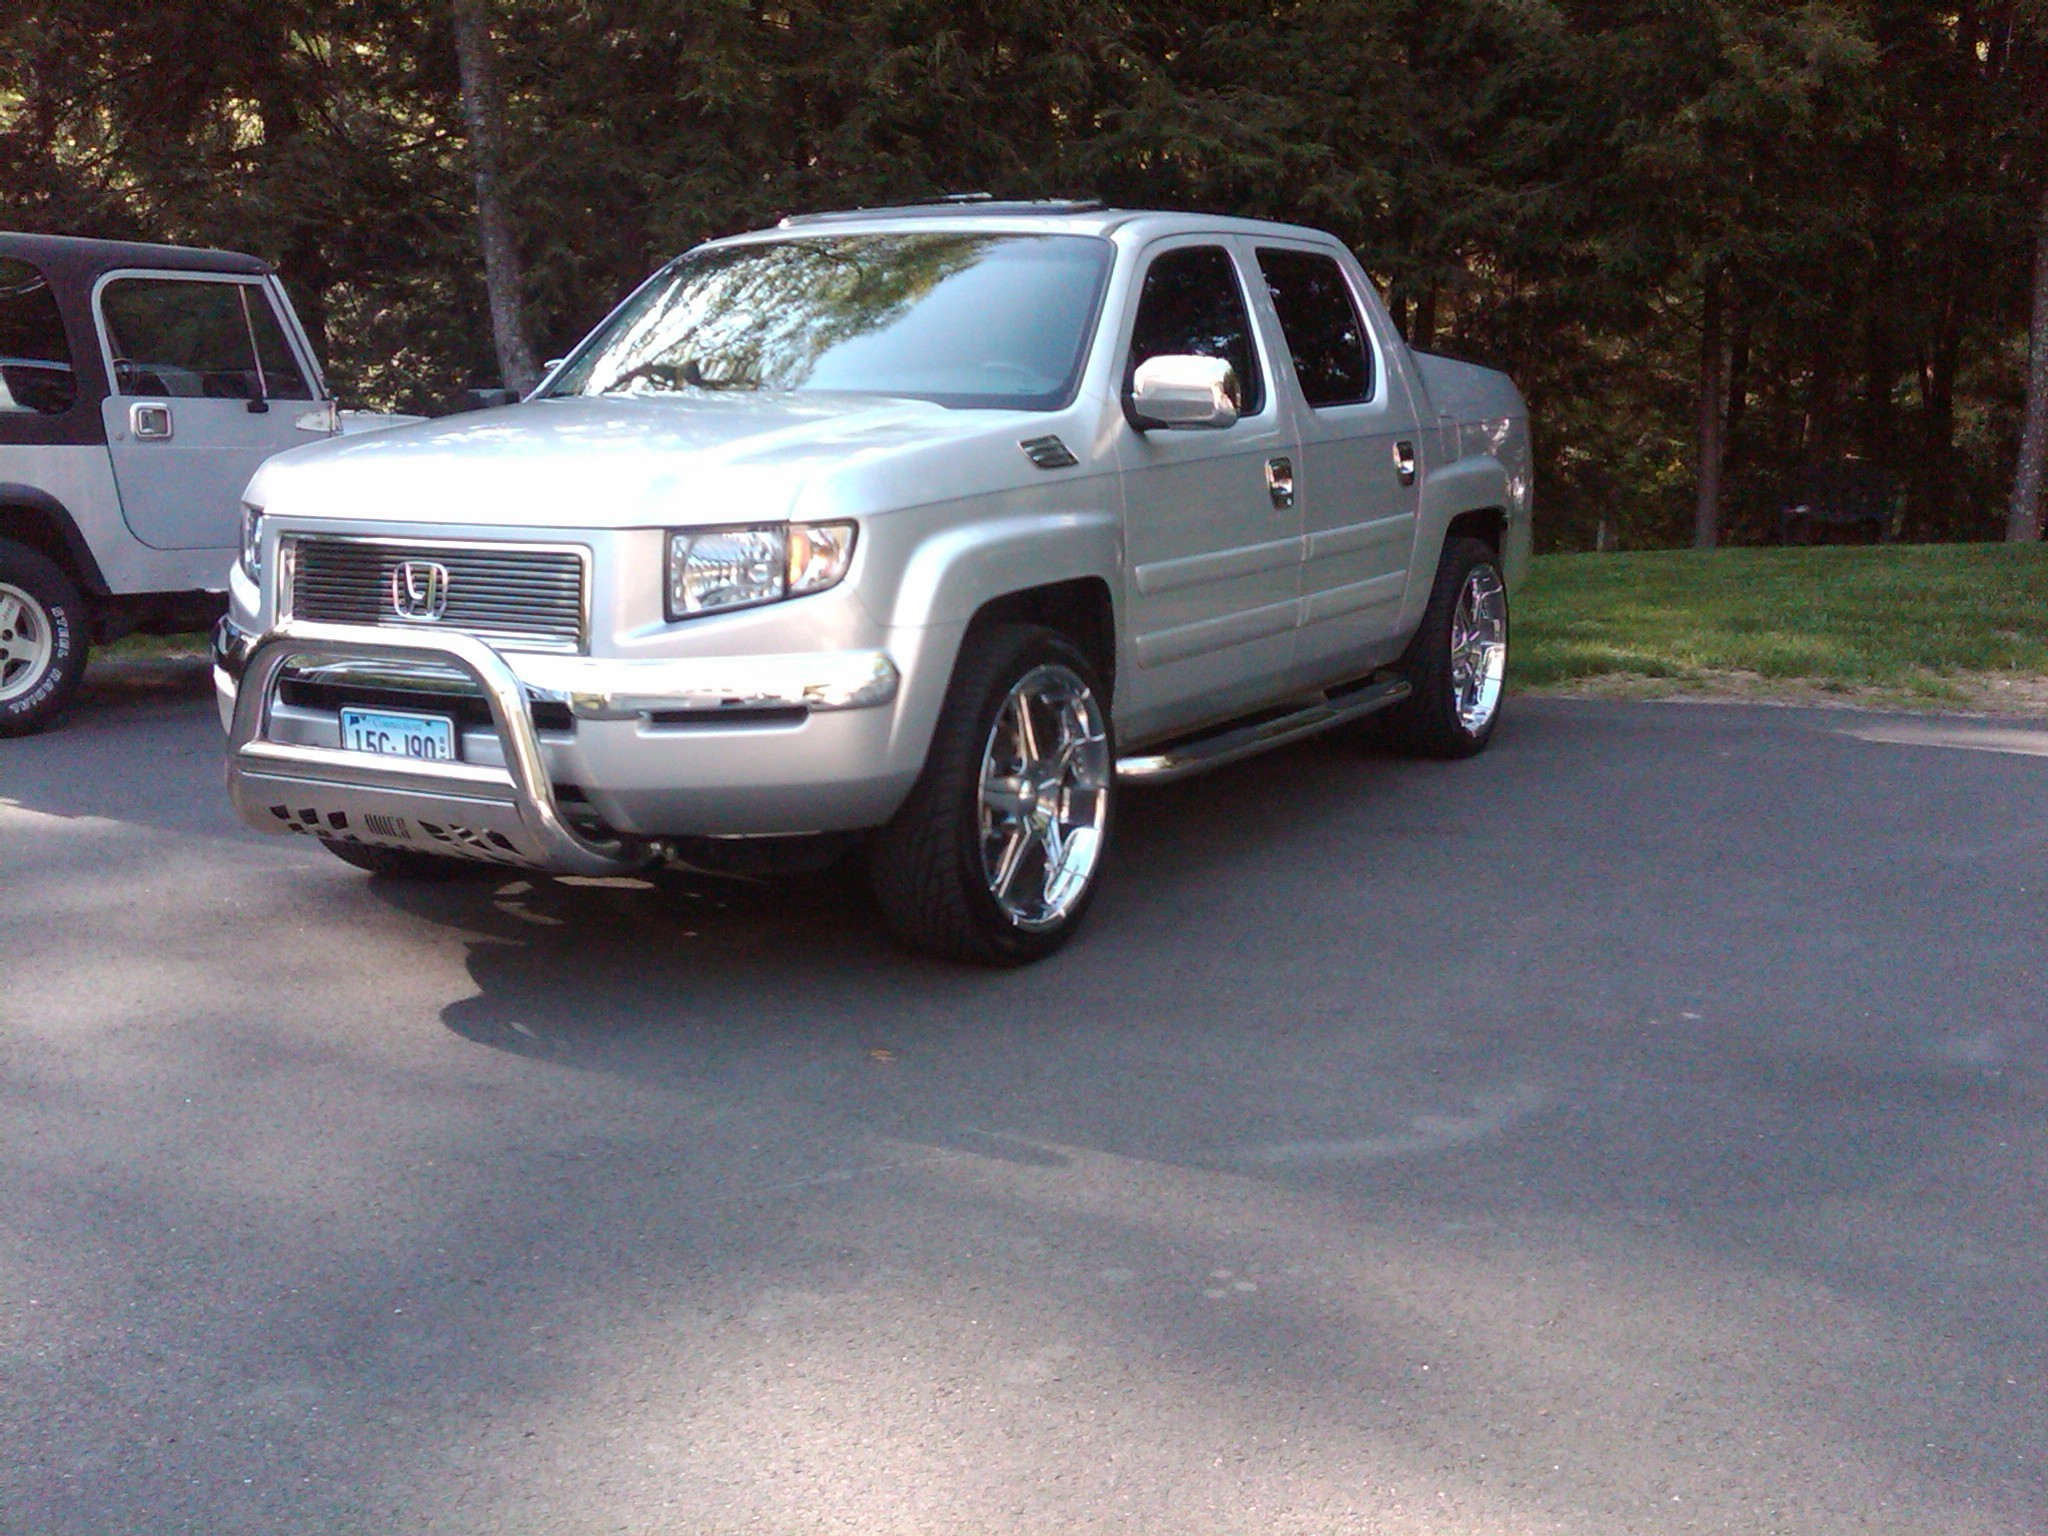 Image Result For Inch Honda Ridgeline Rims